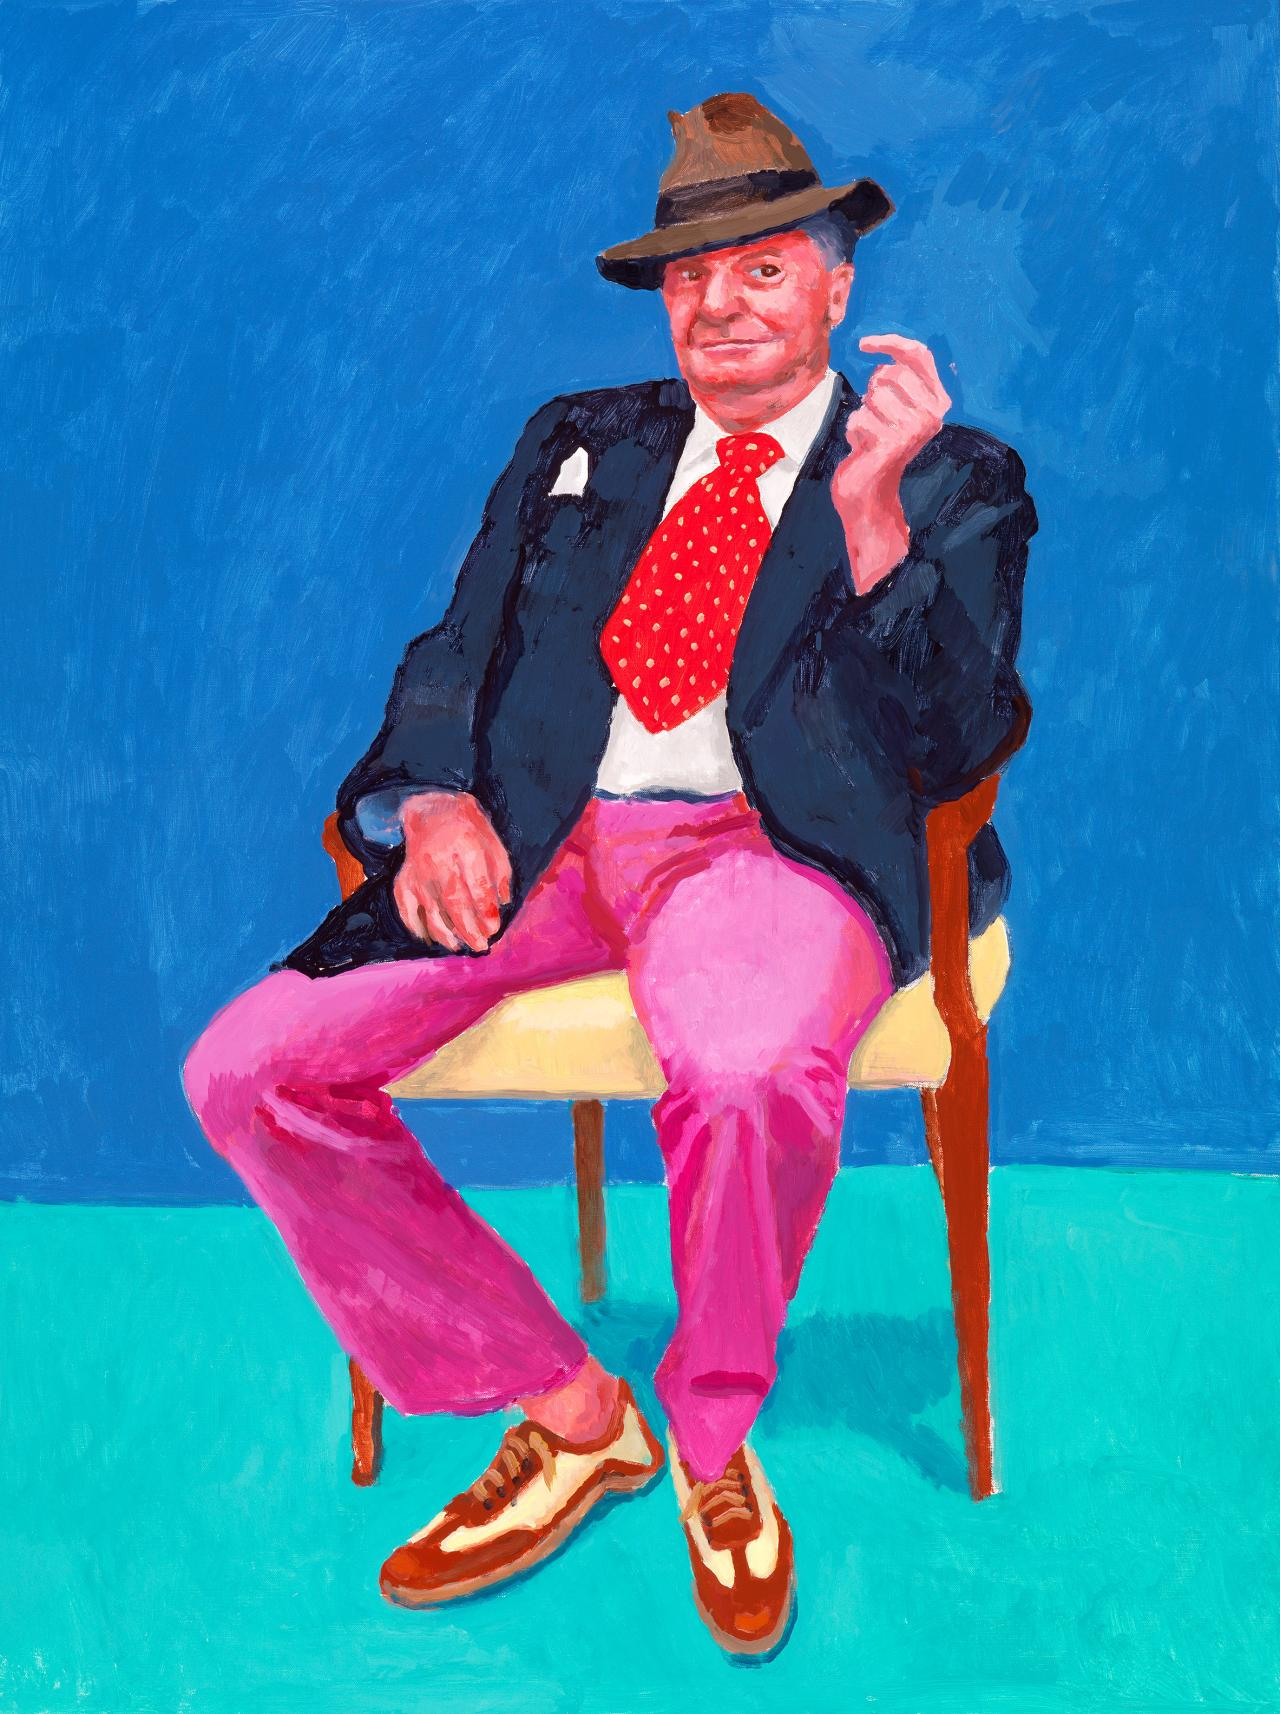 David Hockney<br/> English 1937–<br/> Barry Humphries, 26th, 27th, 28th March 2015<br/> acrylic on canvas<br/> 121.9 x 91.4 cm<br/> Collection of the artist<br/> © David Hockney<br/> Photo Credit: Richard Schmidt